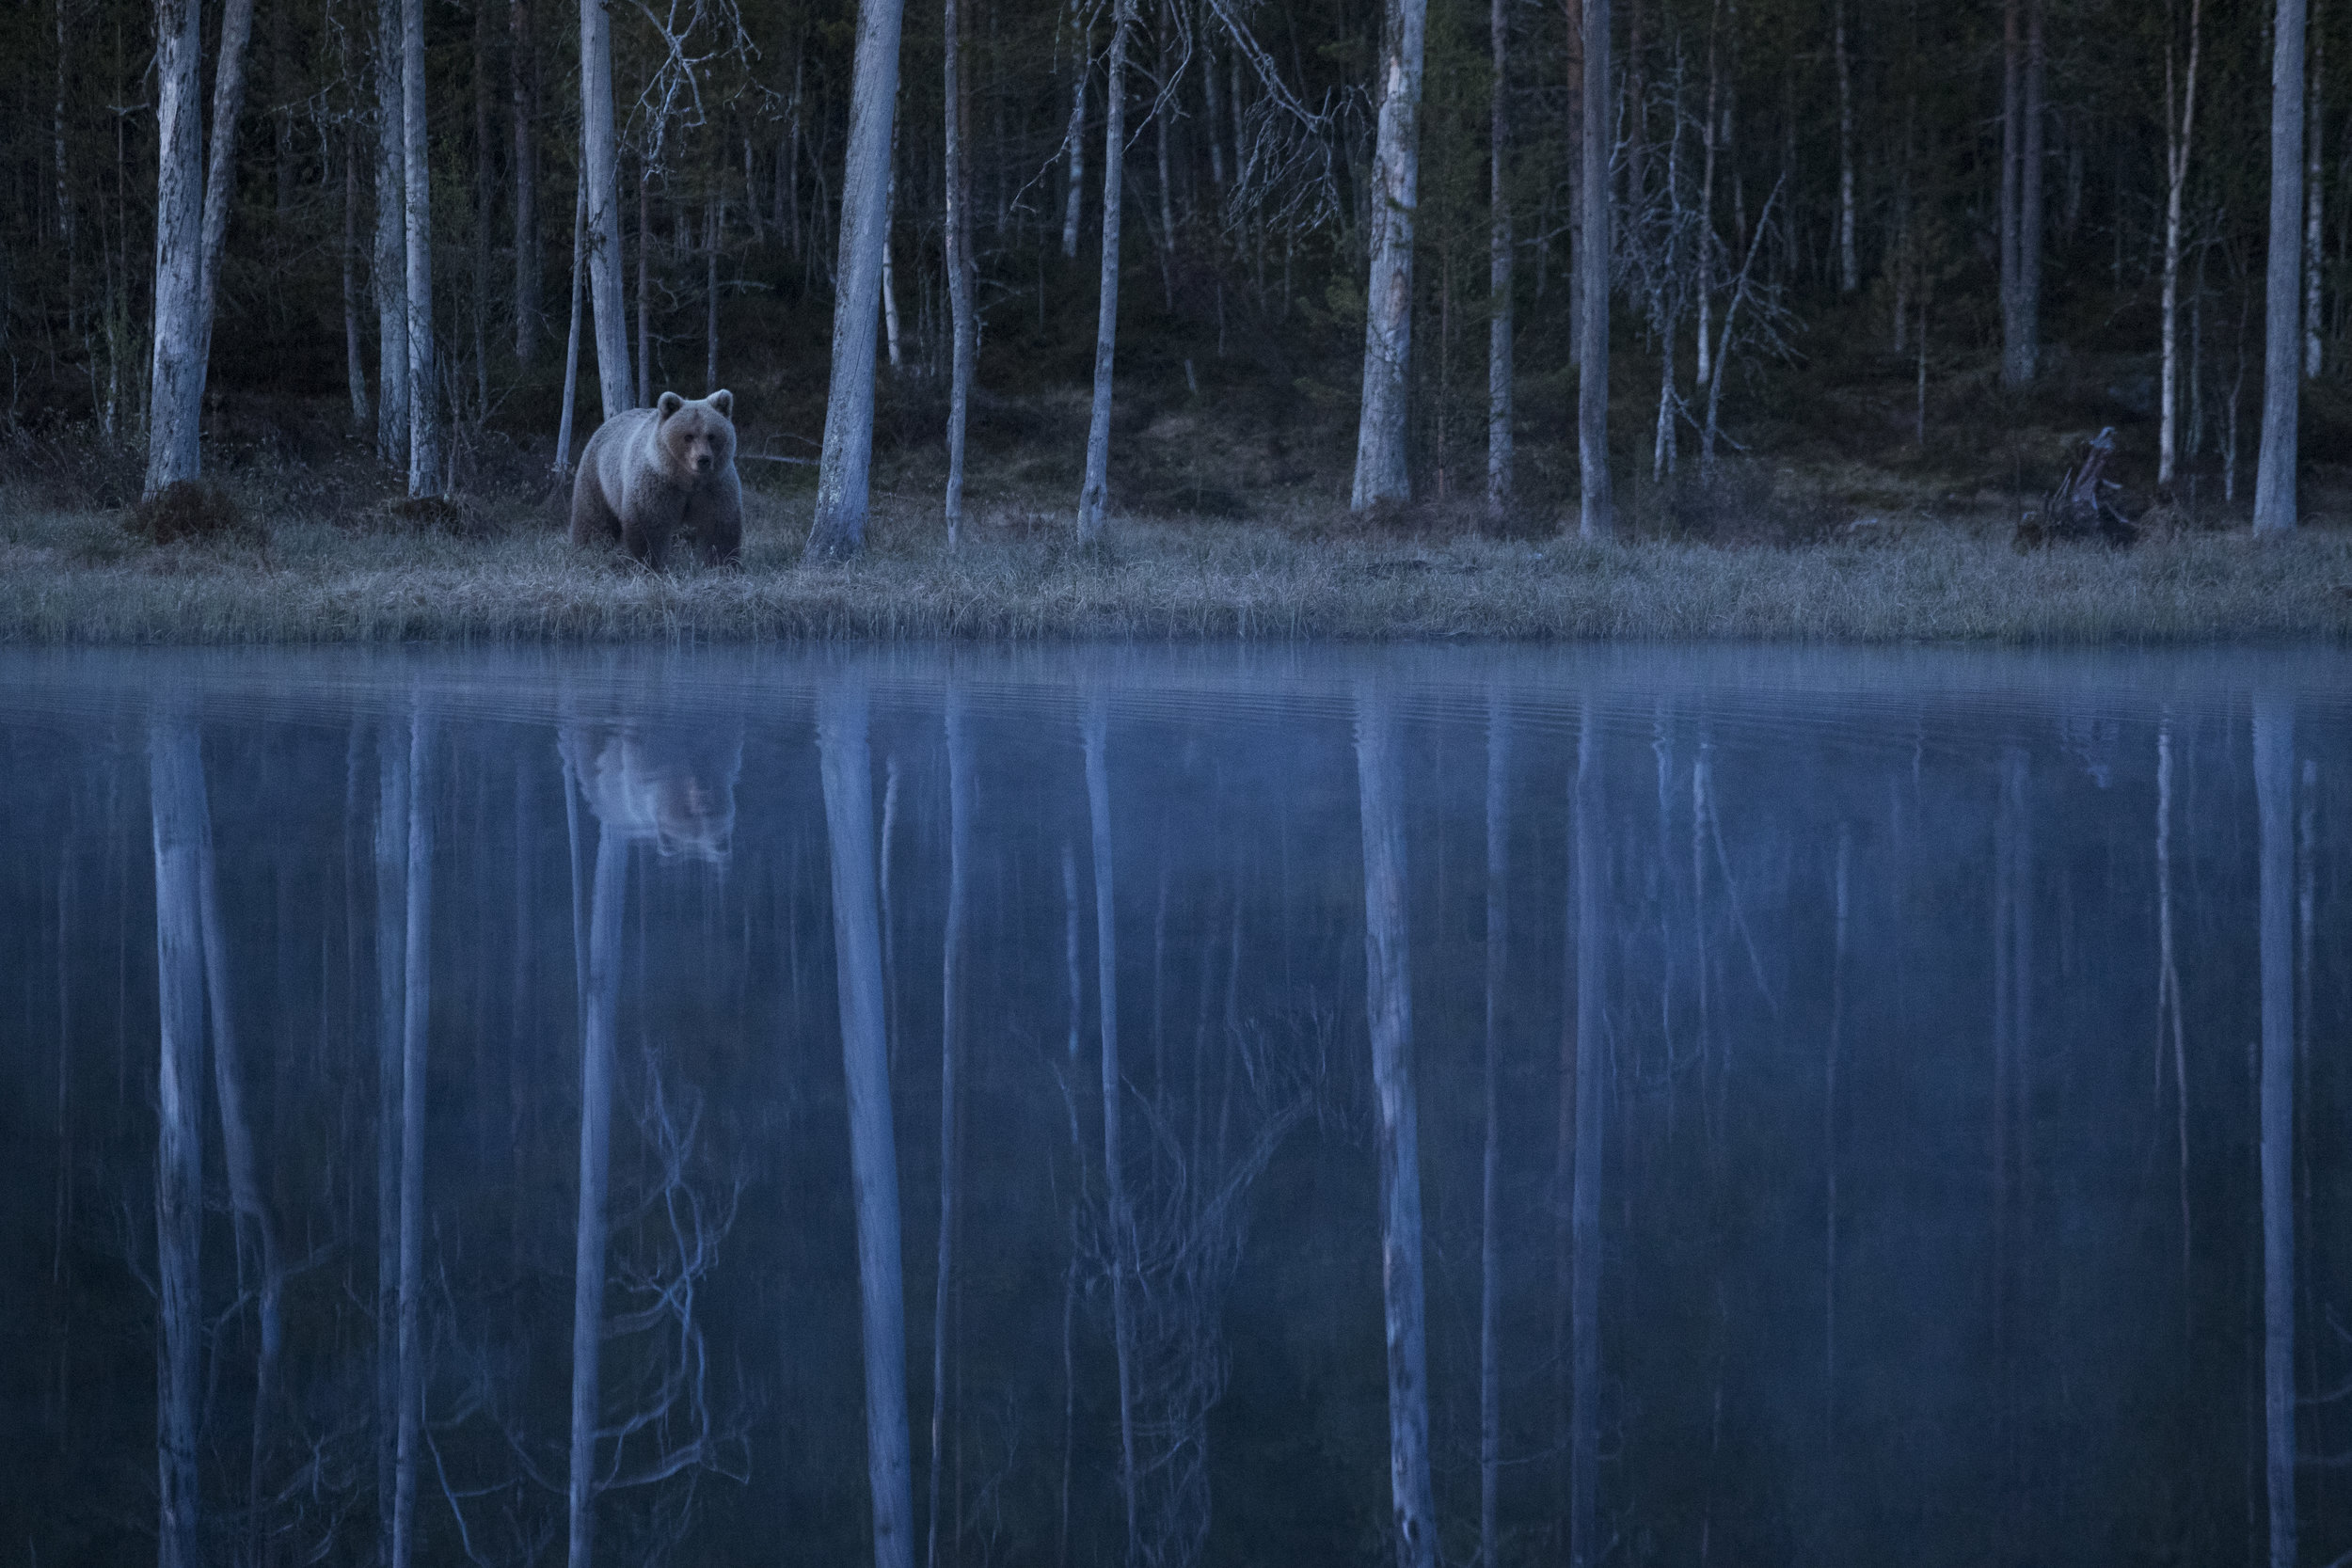 Ethereal light and ghostly mist - The pale female Bear 'Blondie' pauses next to the main lake.